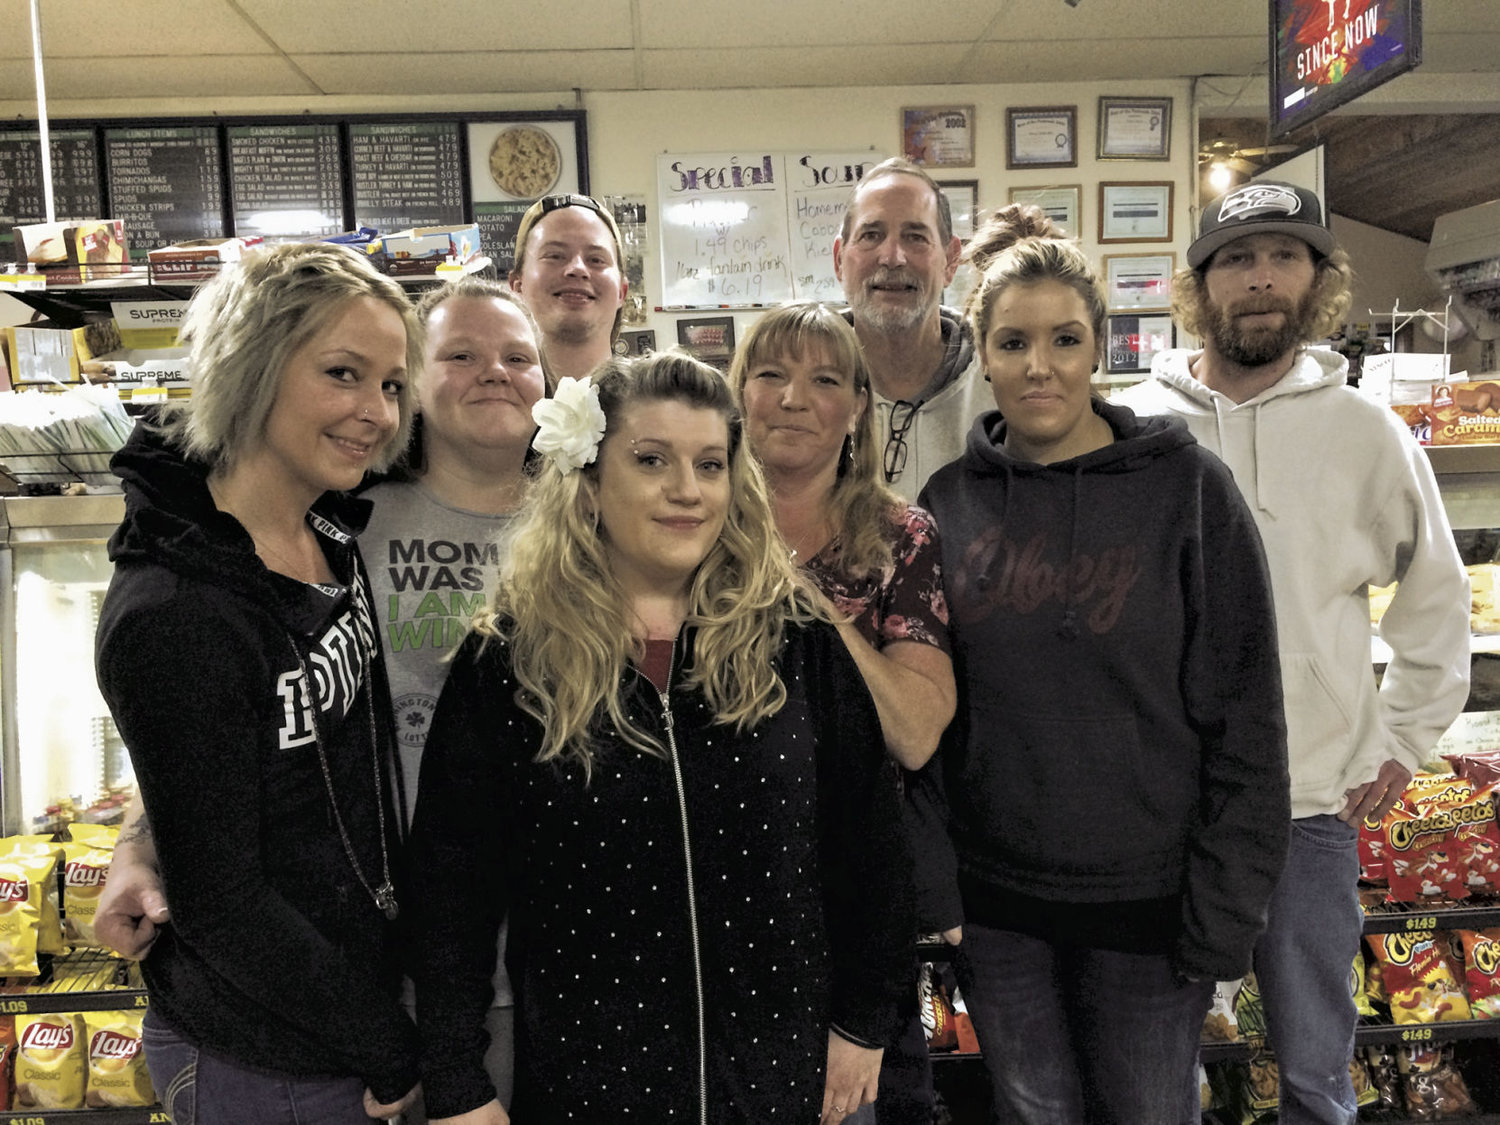 Penny Saver Mart is a family-owned business in Port Townsend, and its staff thanks the Reader's Choice participants who rated it as the favorite convenience store. The staff (not all pictured) includes Cindy Ramey, Roger Ramey, Scott Ramey, Jess Glaze, Amy Scott, Mel Fossum, Brittany Boucher, Mary Rodriquez and Chad Giakas.